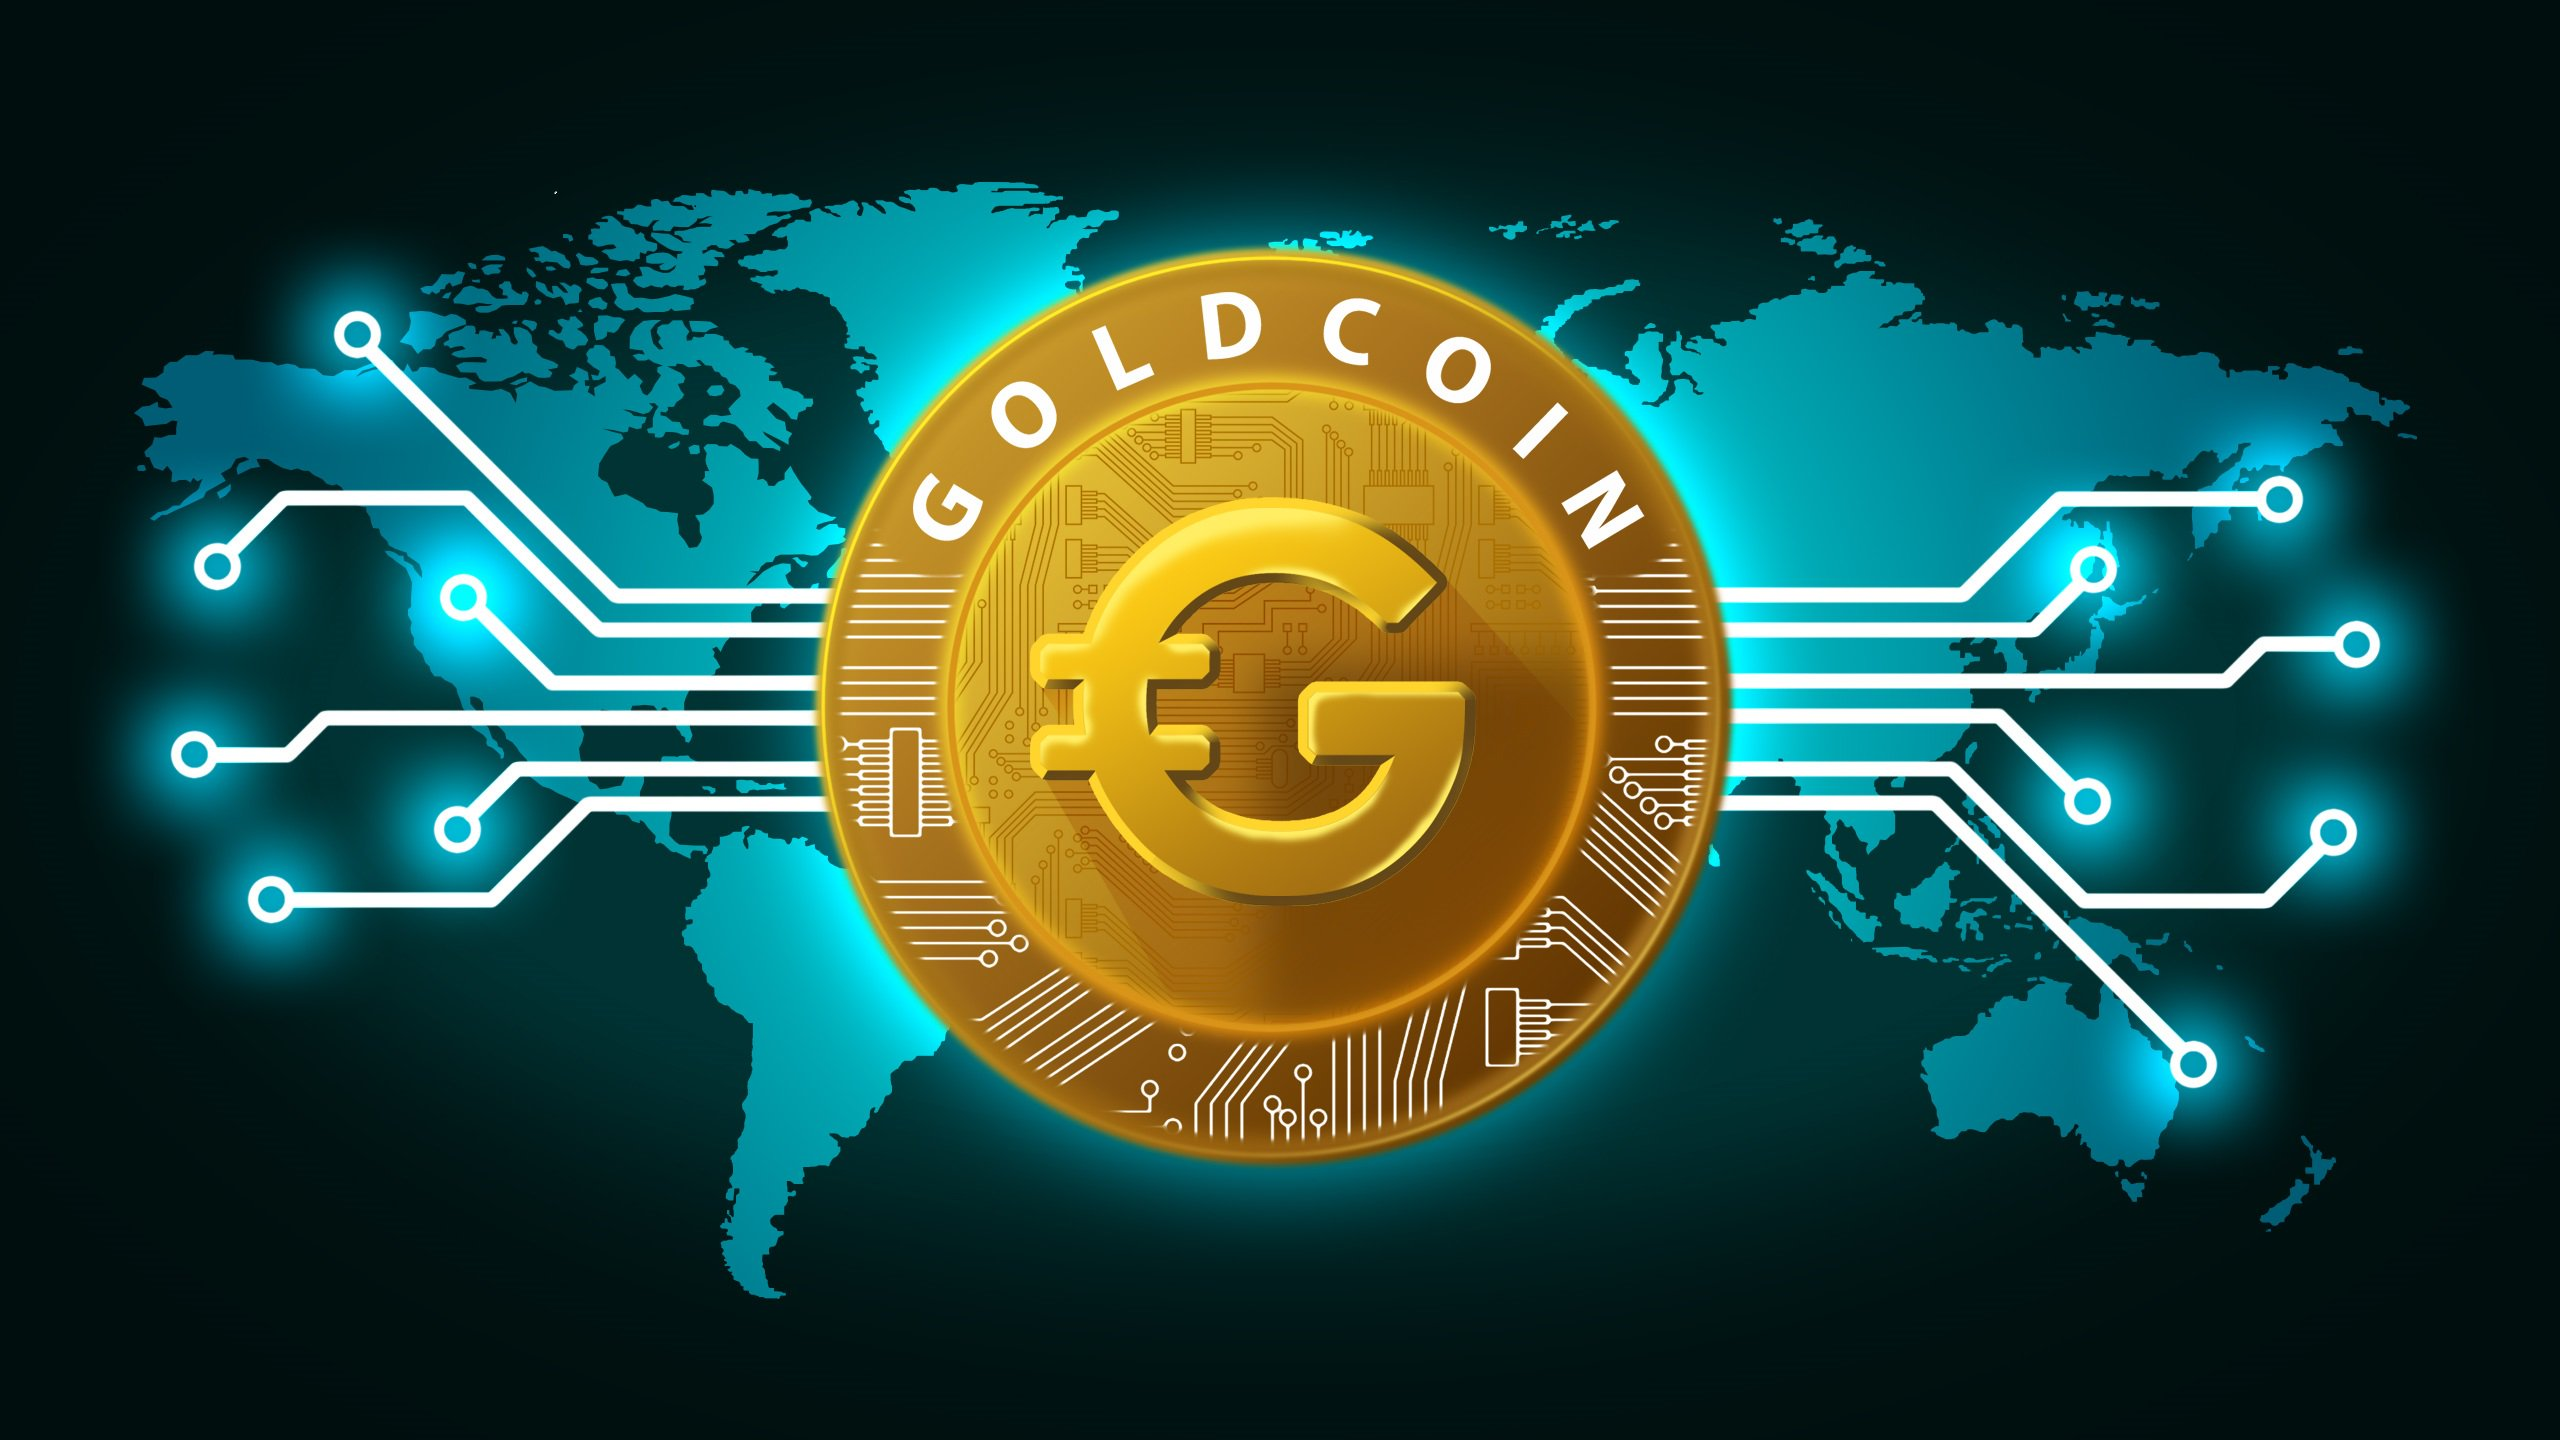 GoldCoin Spikes, Delivering Improved Network Security And Transaction Speed